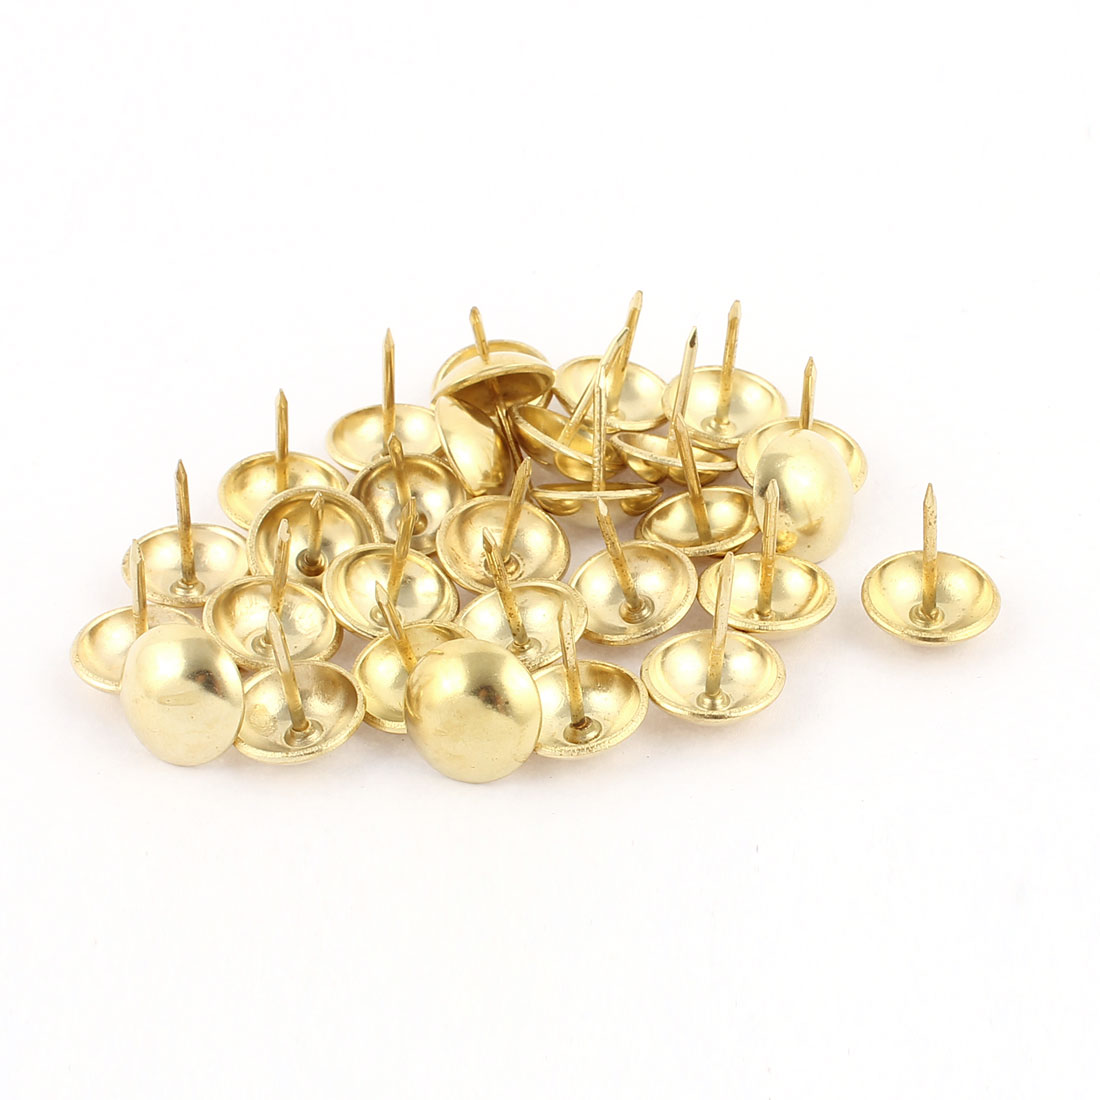 Home Furniture Sofa Iron Upholstery Thumb Tack Nail Gold Tone 14mm x 17mm 30pcs